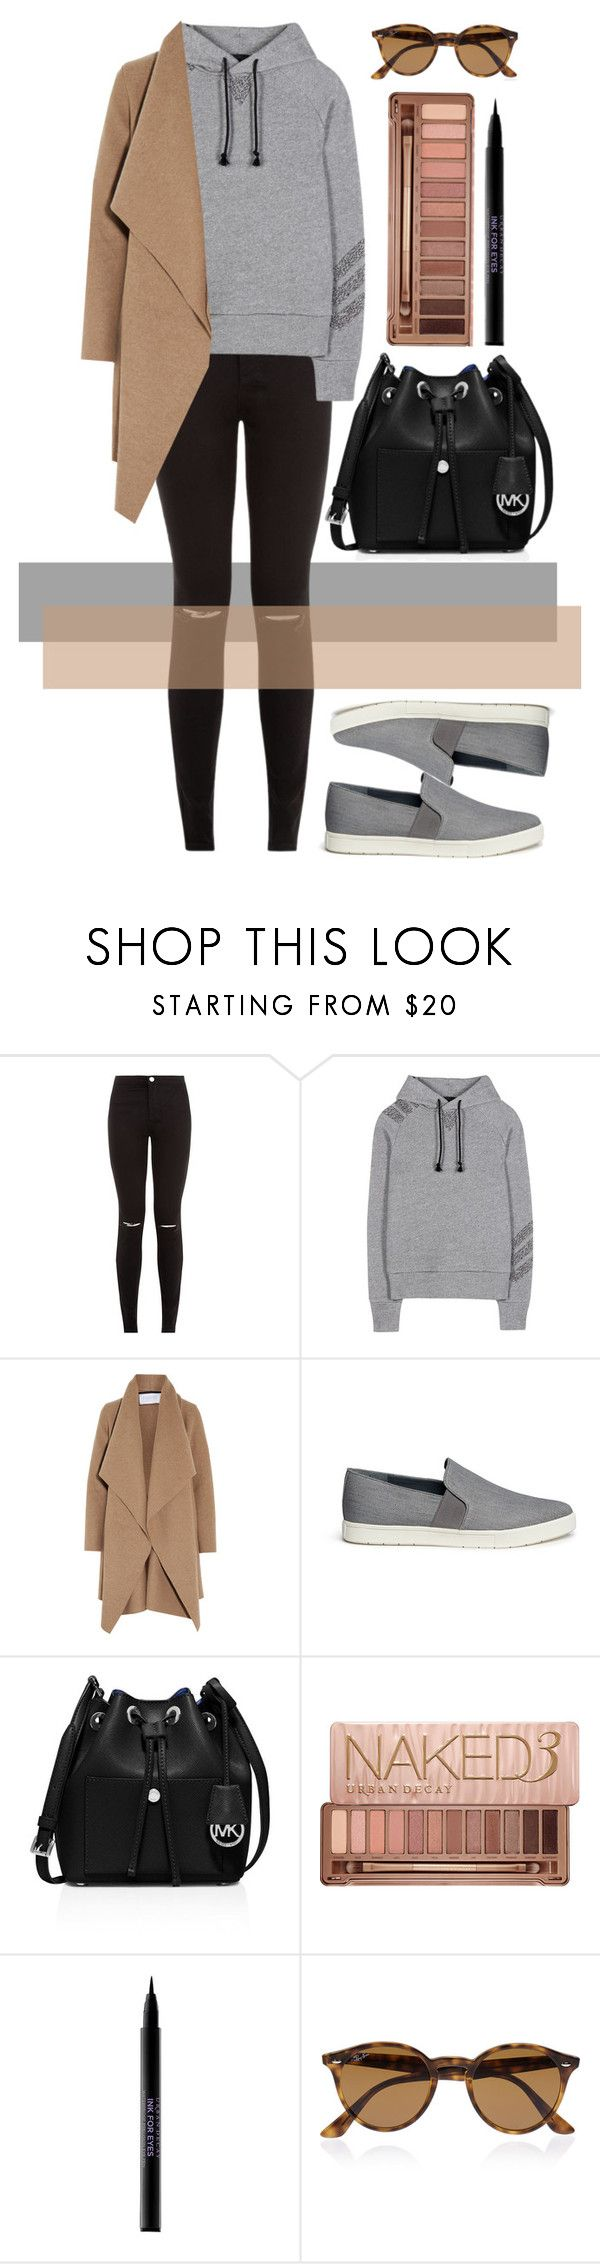 """Untitled #540"" by ssm1562 on Polyvore featuring Y-3, Harris Wharf London, Vince, MICHAEL Michael Kors, Urban Decay, Ray-Ban, women's clothing, women's fashion, women and female"